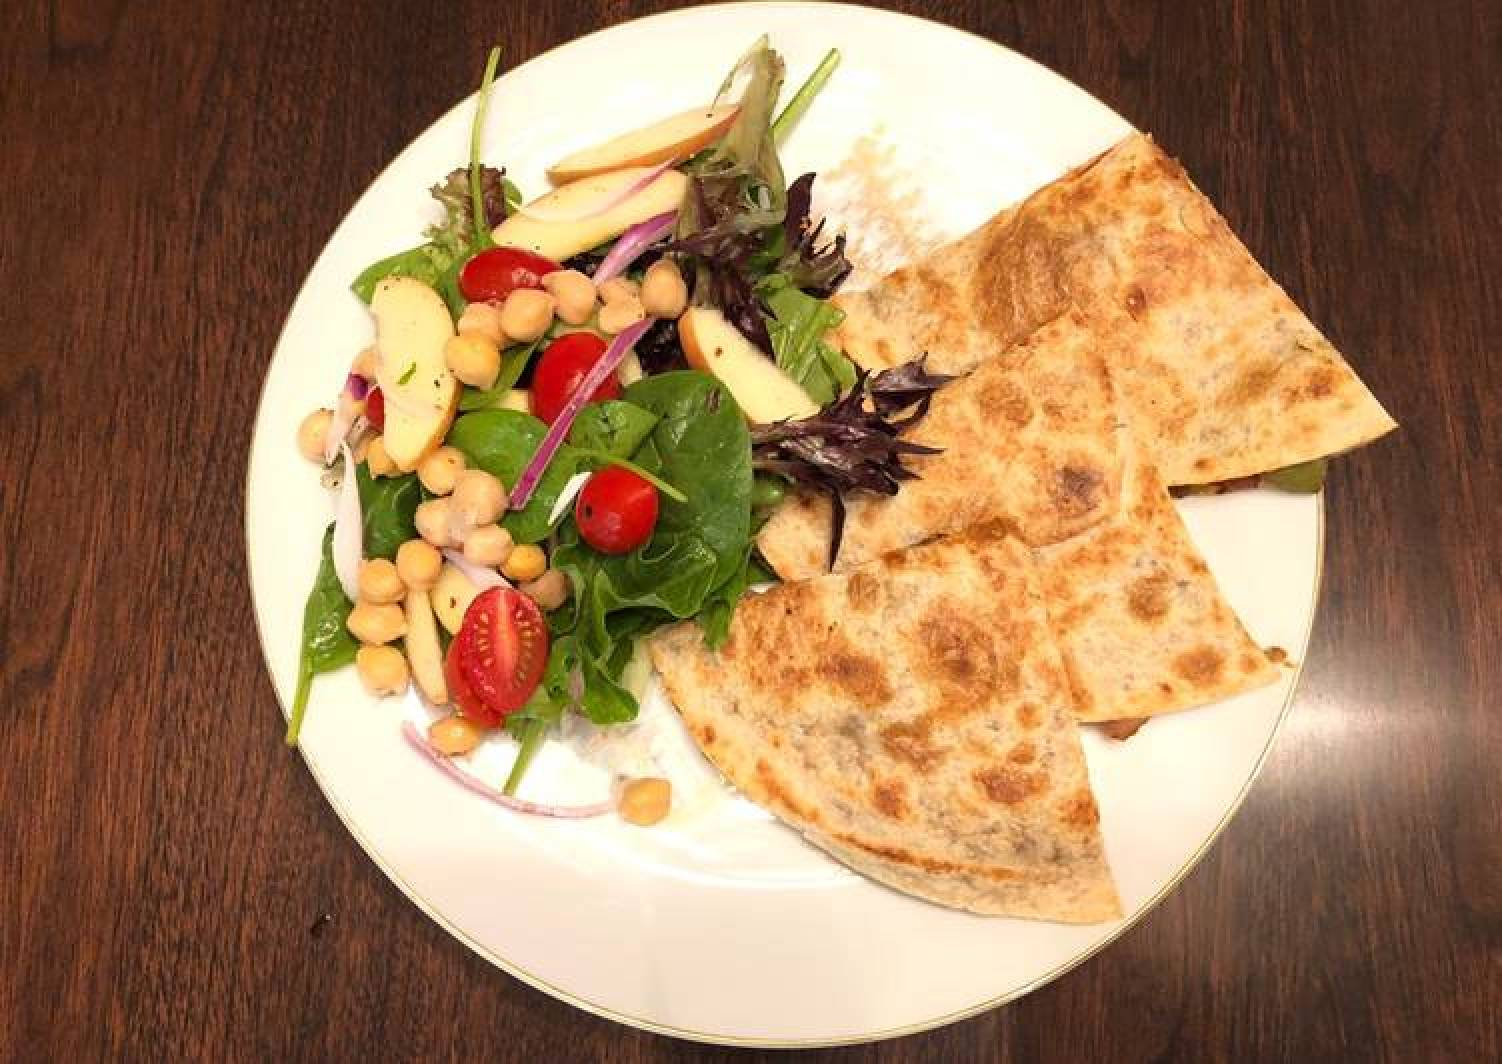 Chickpeas Lemon Peppers Salad with Refried Bean Veggies Quesadilla